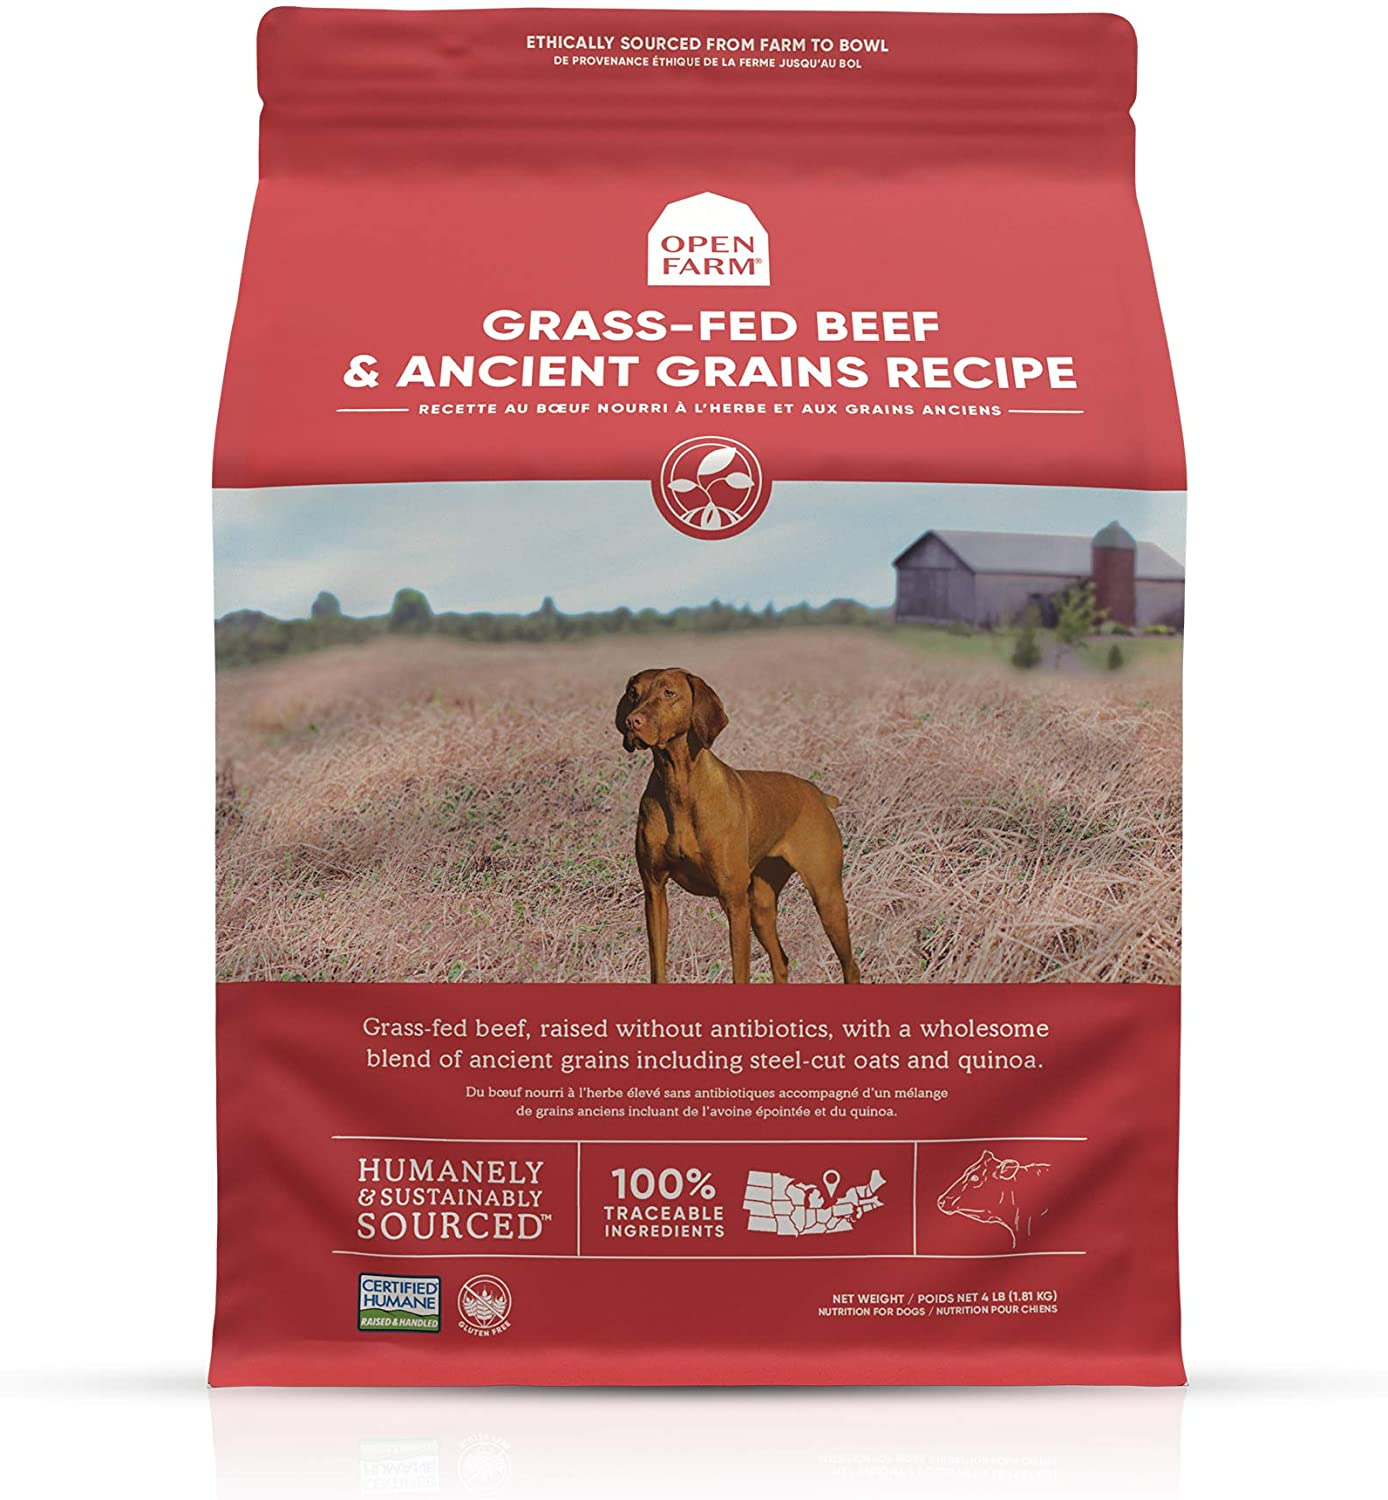 Open Farm Grass-Fed Beef & Ancient Grains Dry Dog Food, 100% Grass-Fed Wagyu Recipe with Wholesome Grains and No Artificial Flavors or Preservatives, 4 lbs